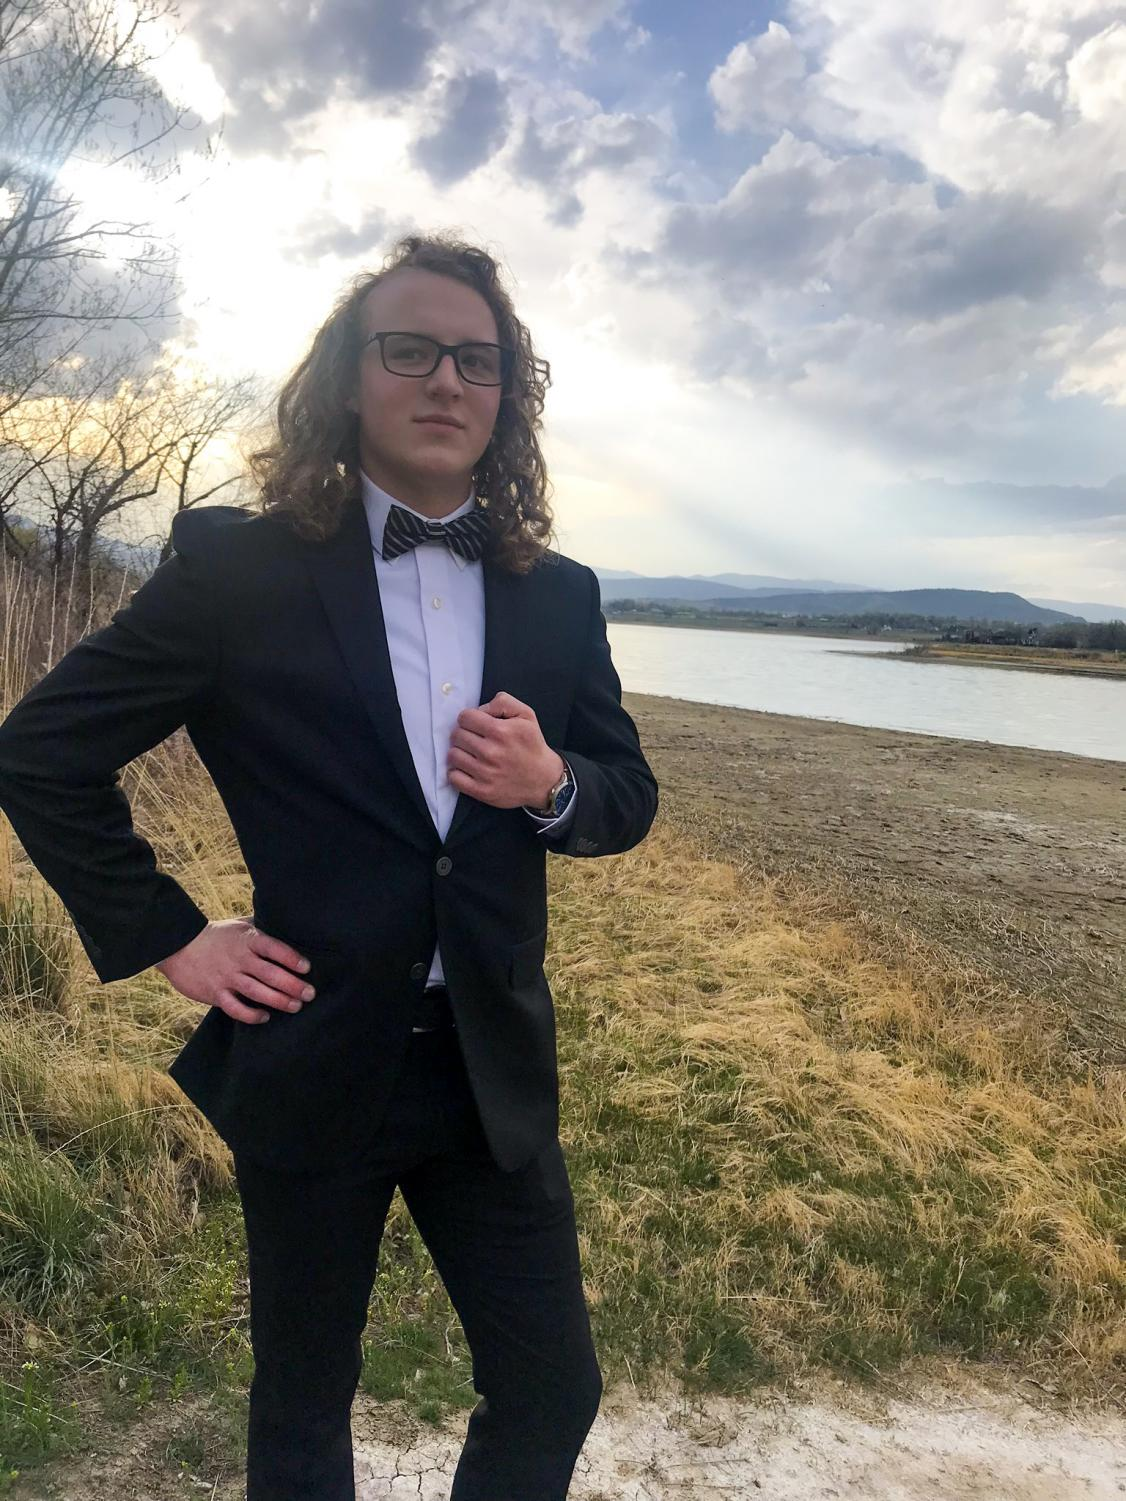 Jared Overturf poses for a photo before attending the 2018 prom